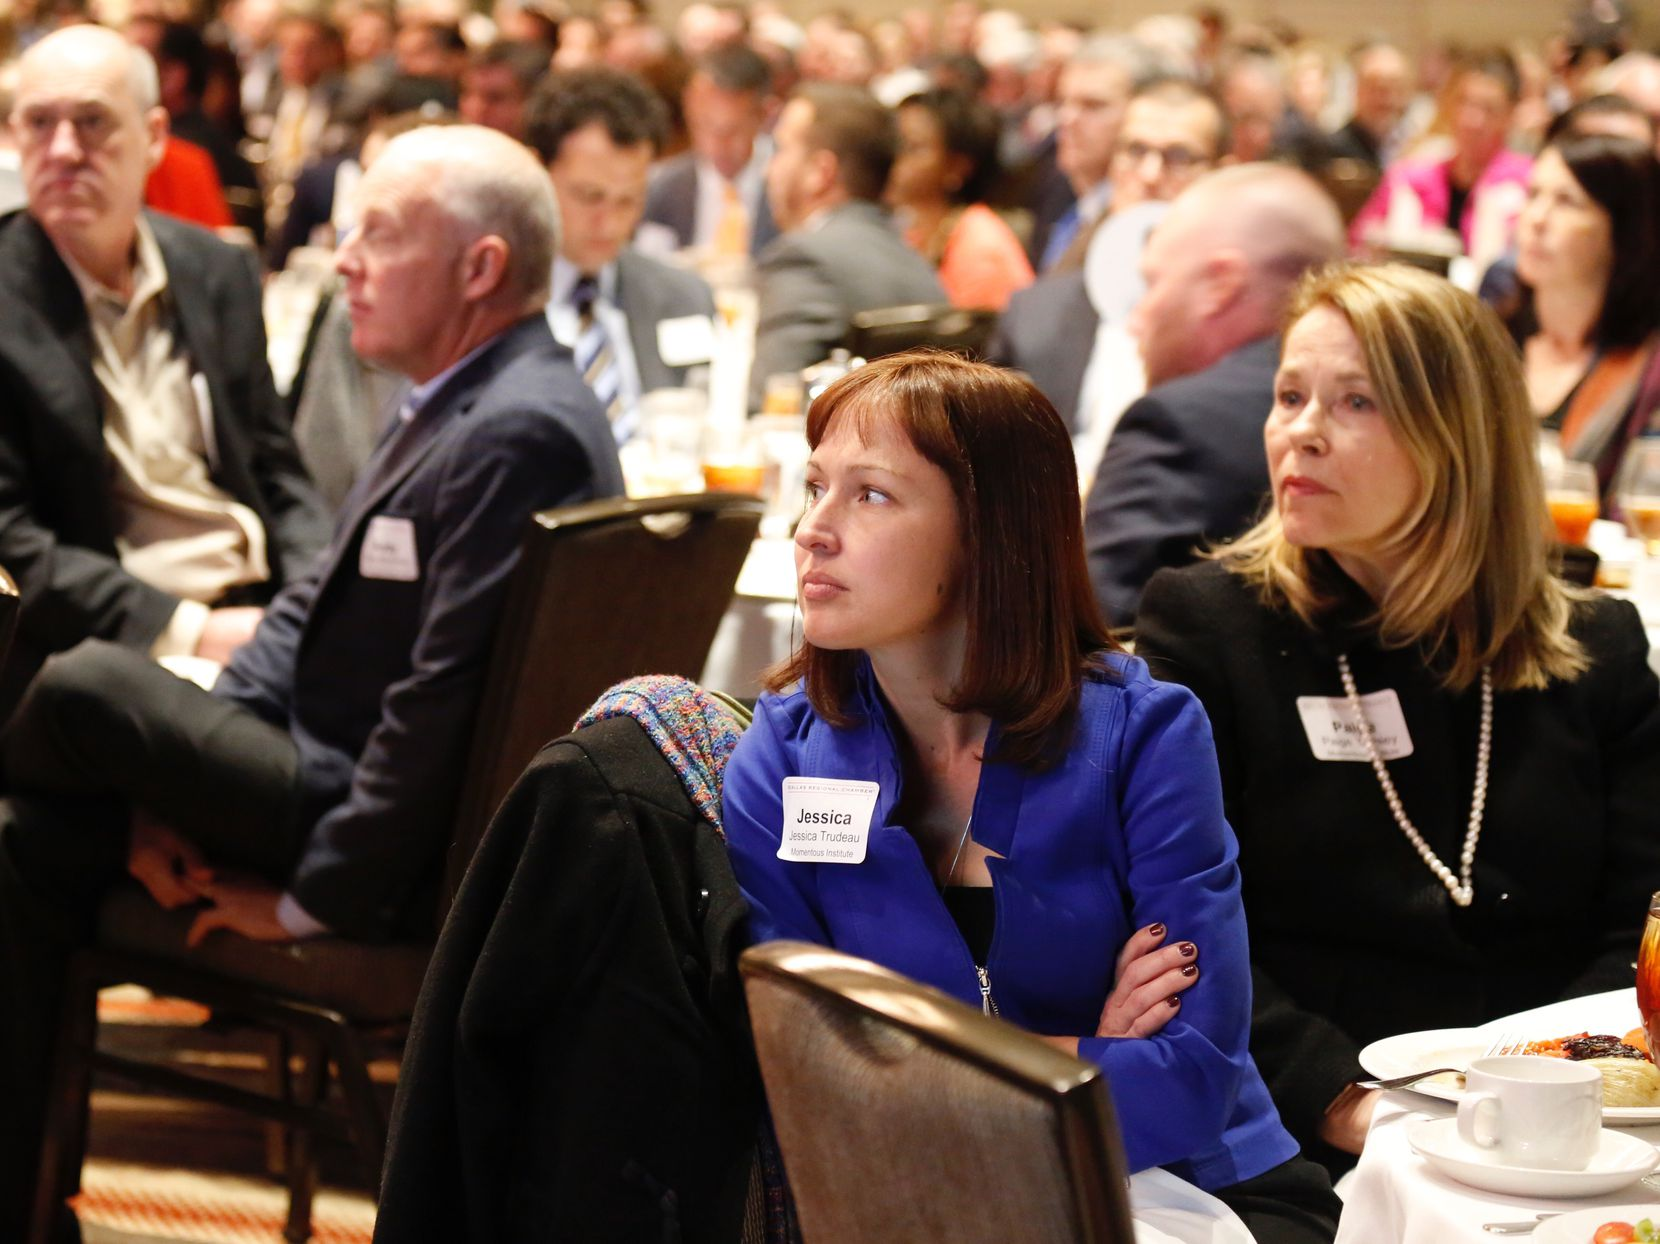 Jessica Trudeau, center, and Paige Conley, right, both with the Momentous Institute, listen to  Dallas Mayor Mike Rawlings give his annual State of the City address at a Dallas Regional Chamber luncheon Tuesday, December 5, 2017.